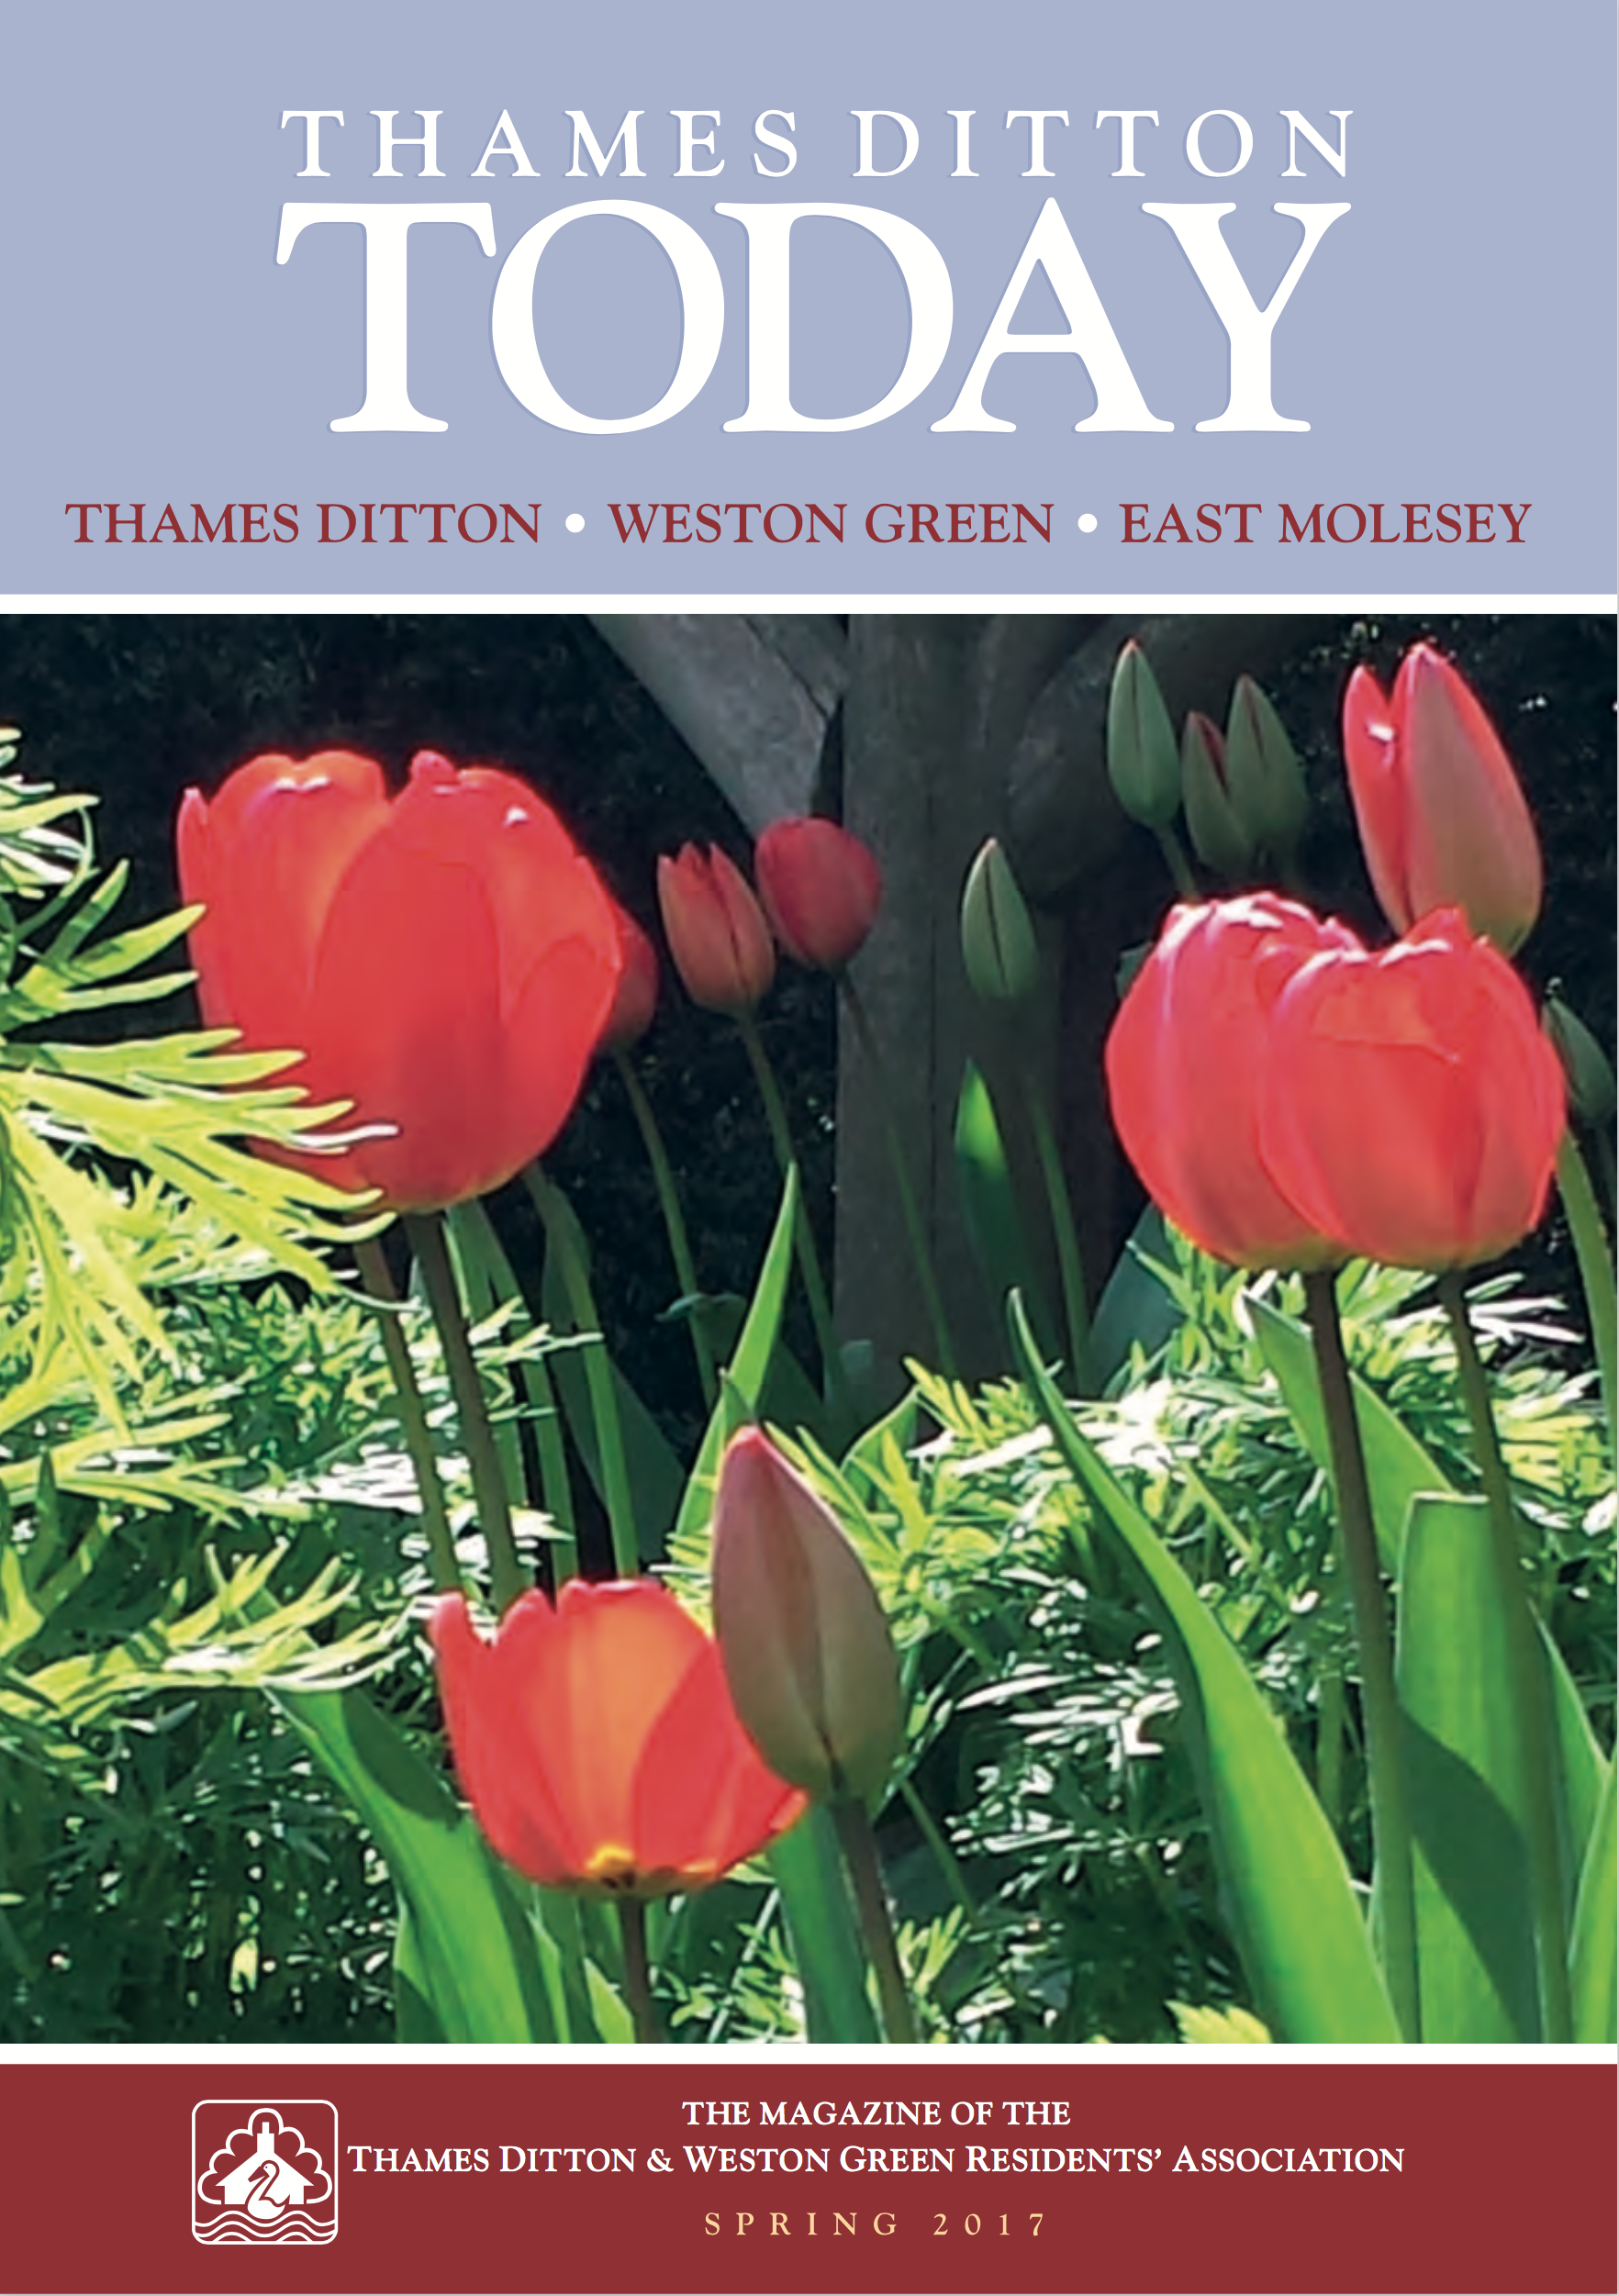 Thames Ditton Today: Spring 2017 issue available online